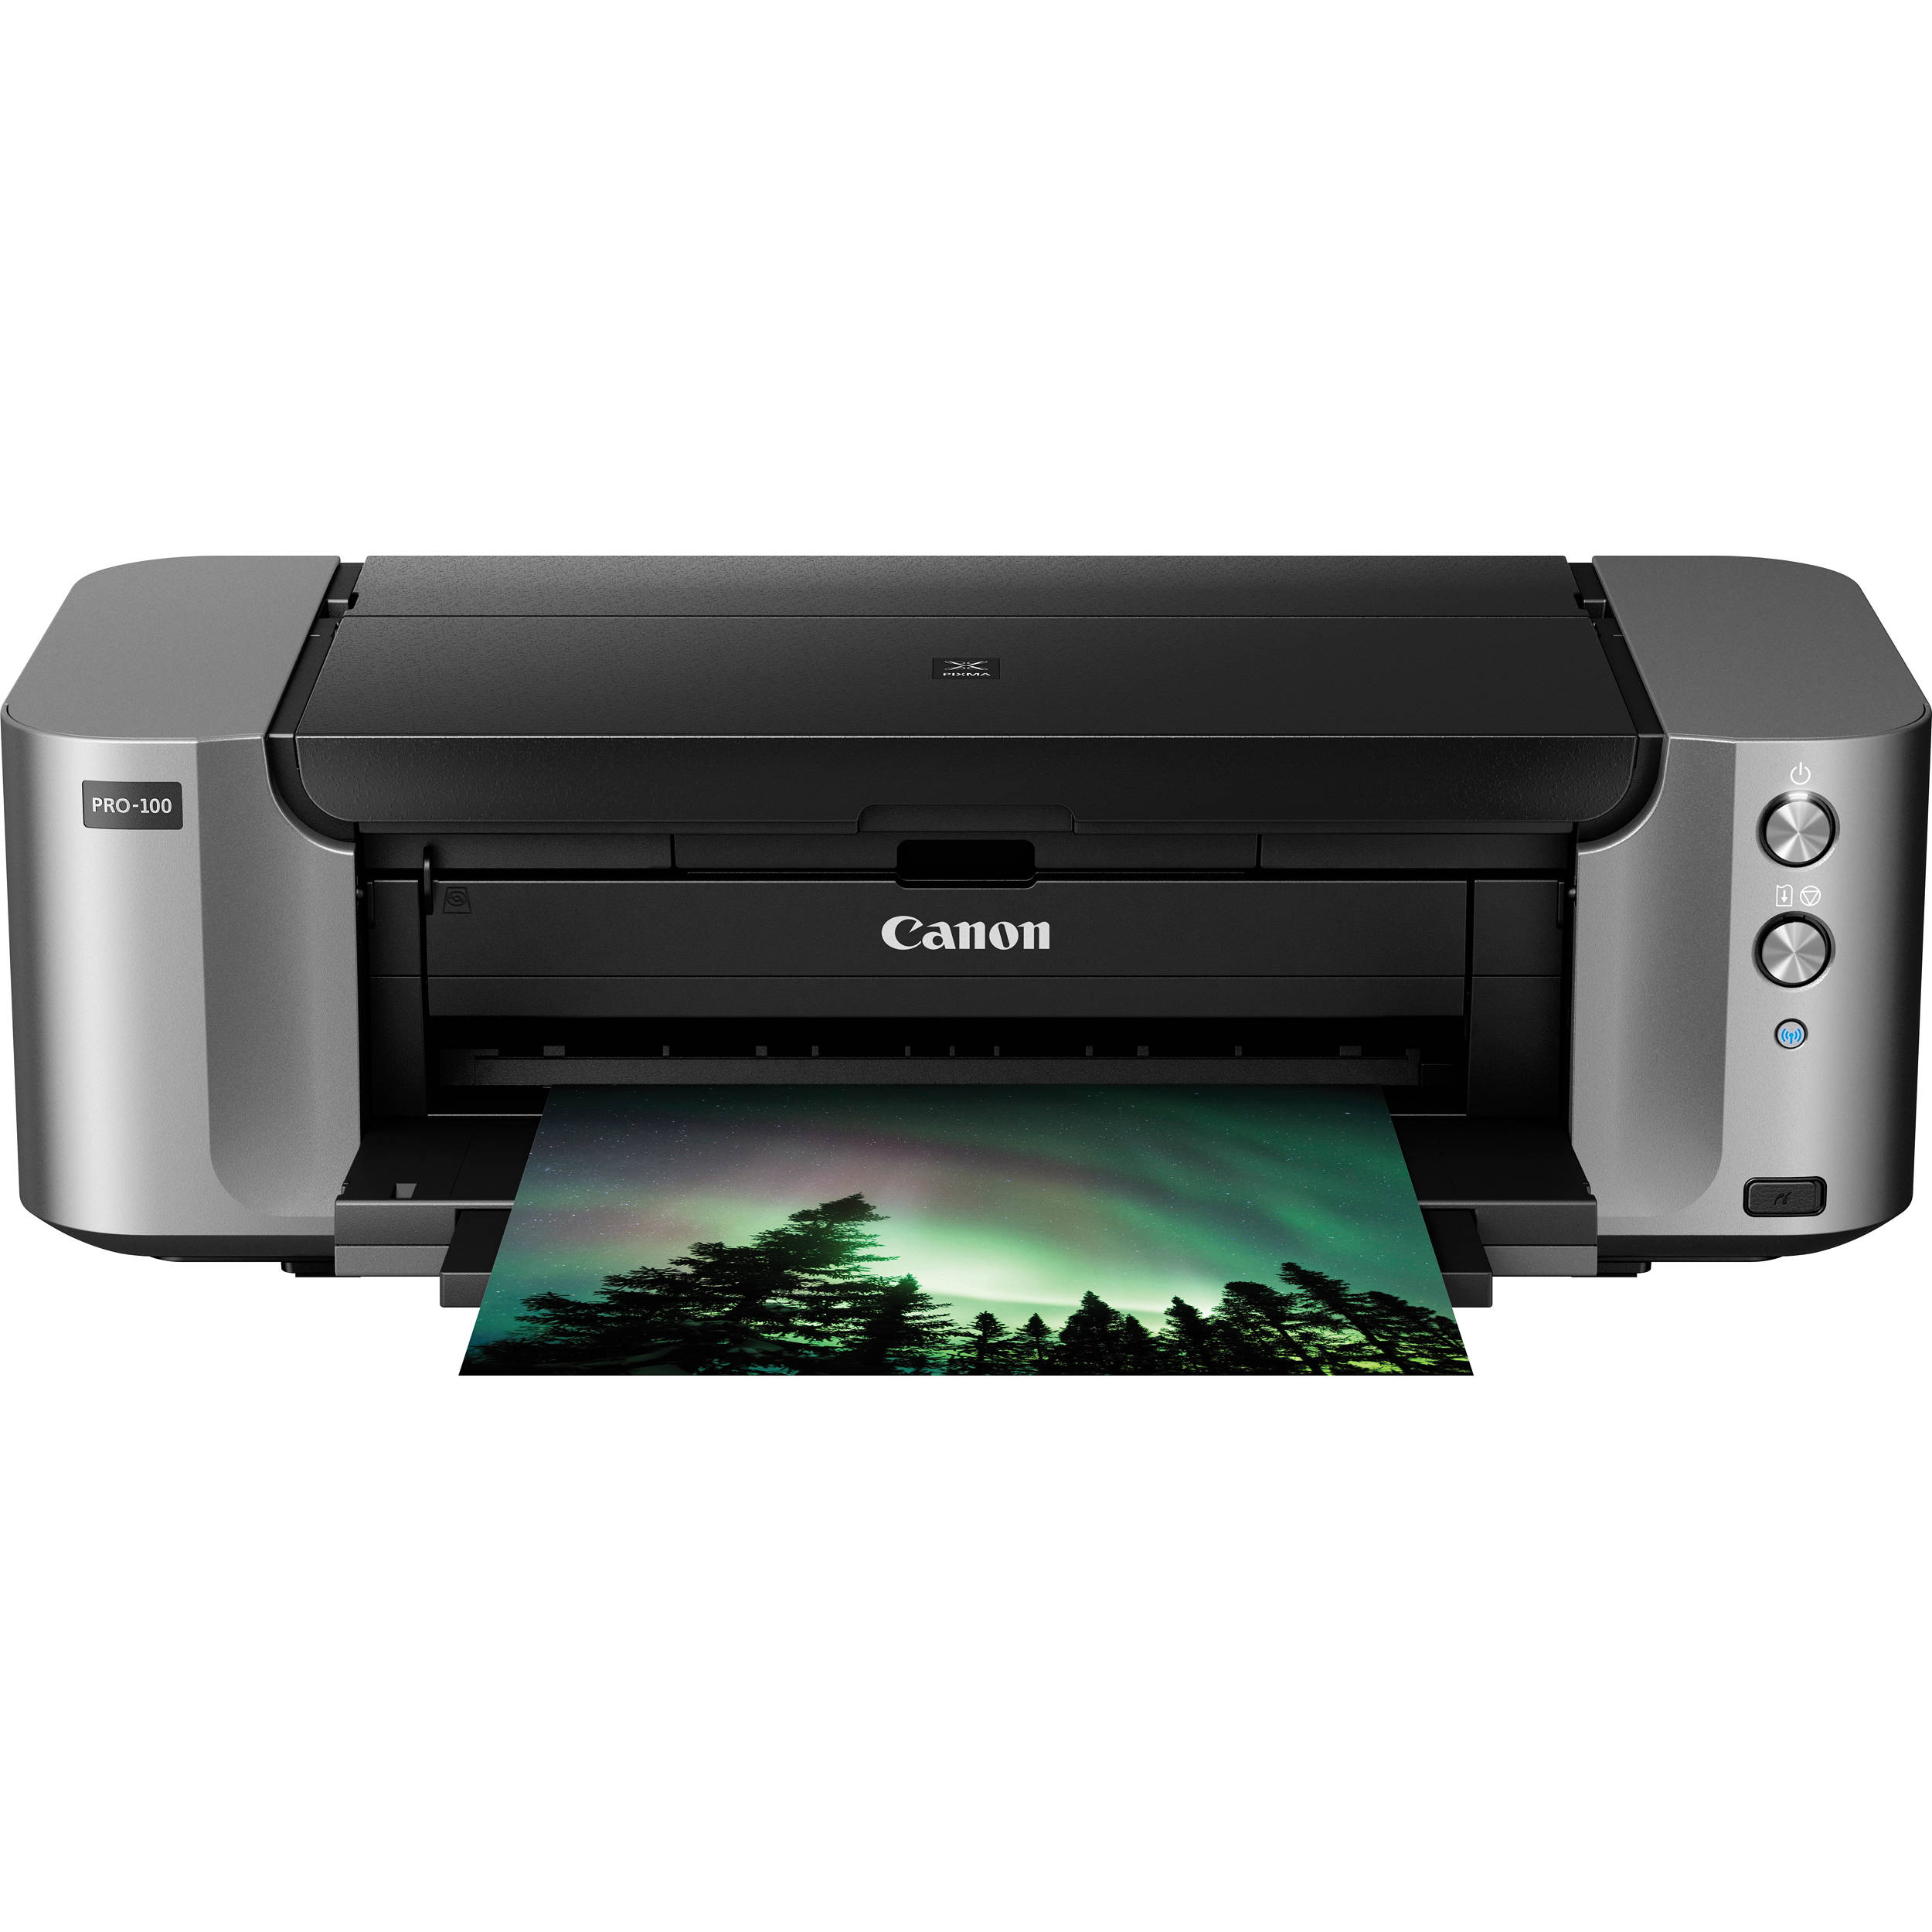 canon service center in injambakkam, canon printer service center in injambakkam